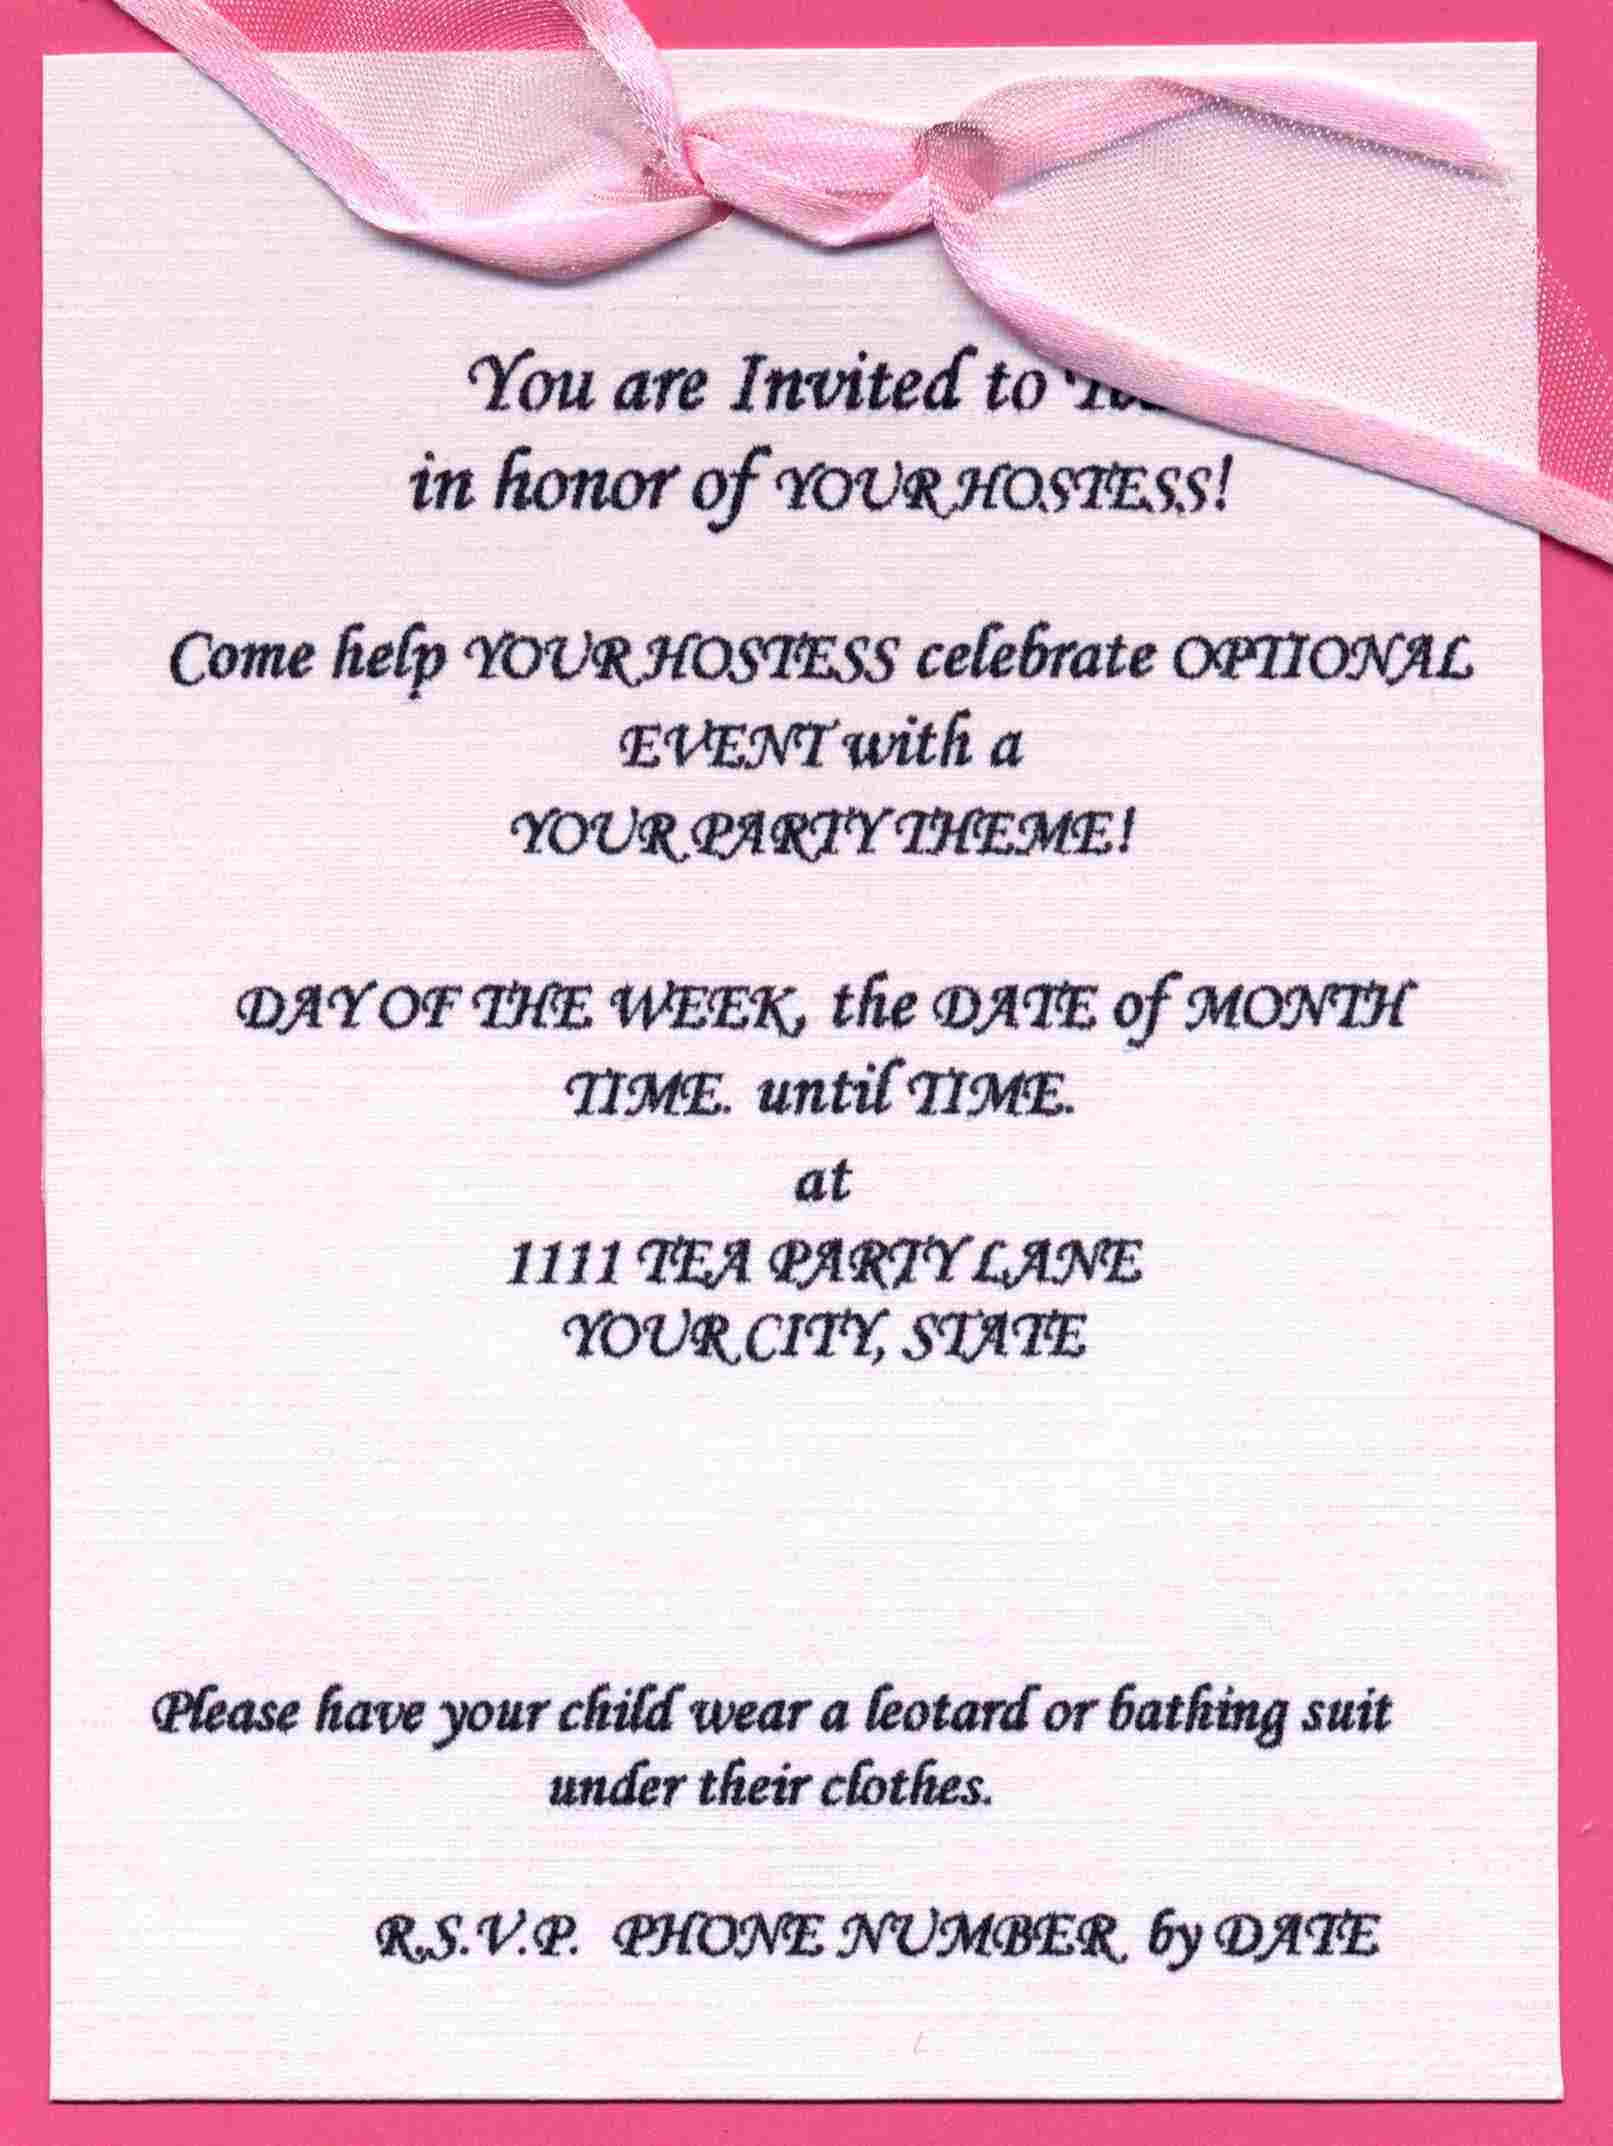 Wedding Party Invitations Wording